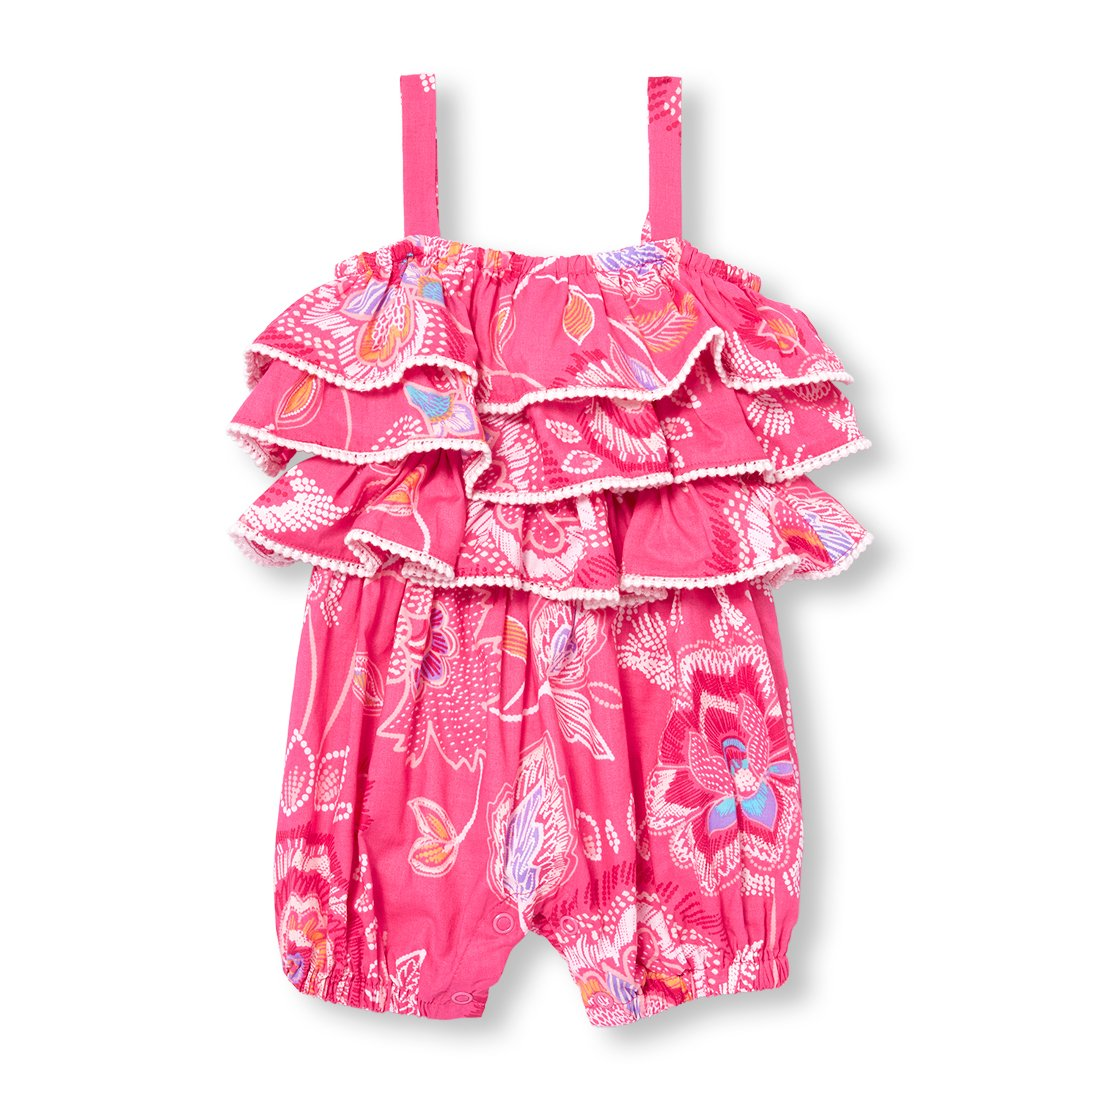 The Children's Place Baby Girls' Sleeveless Romper, Sweet Princess 01534, 9-12MOS